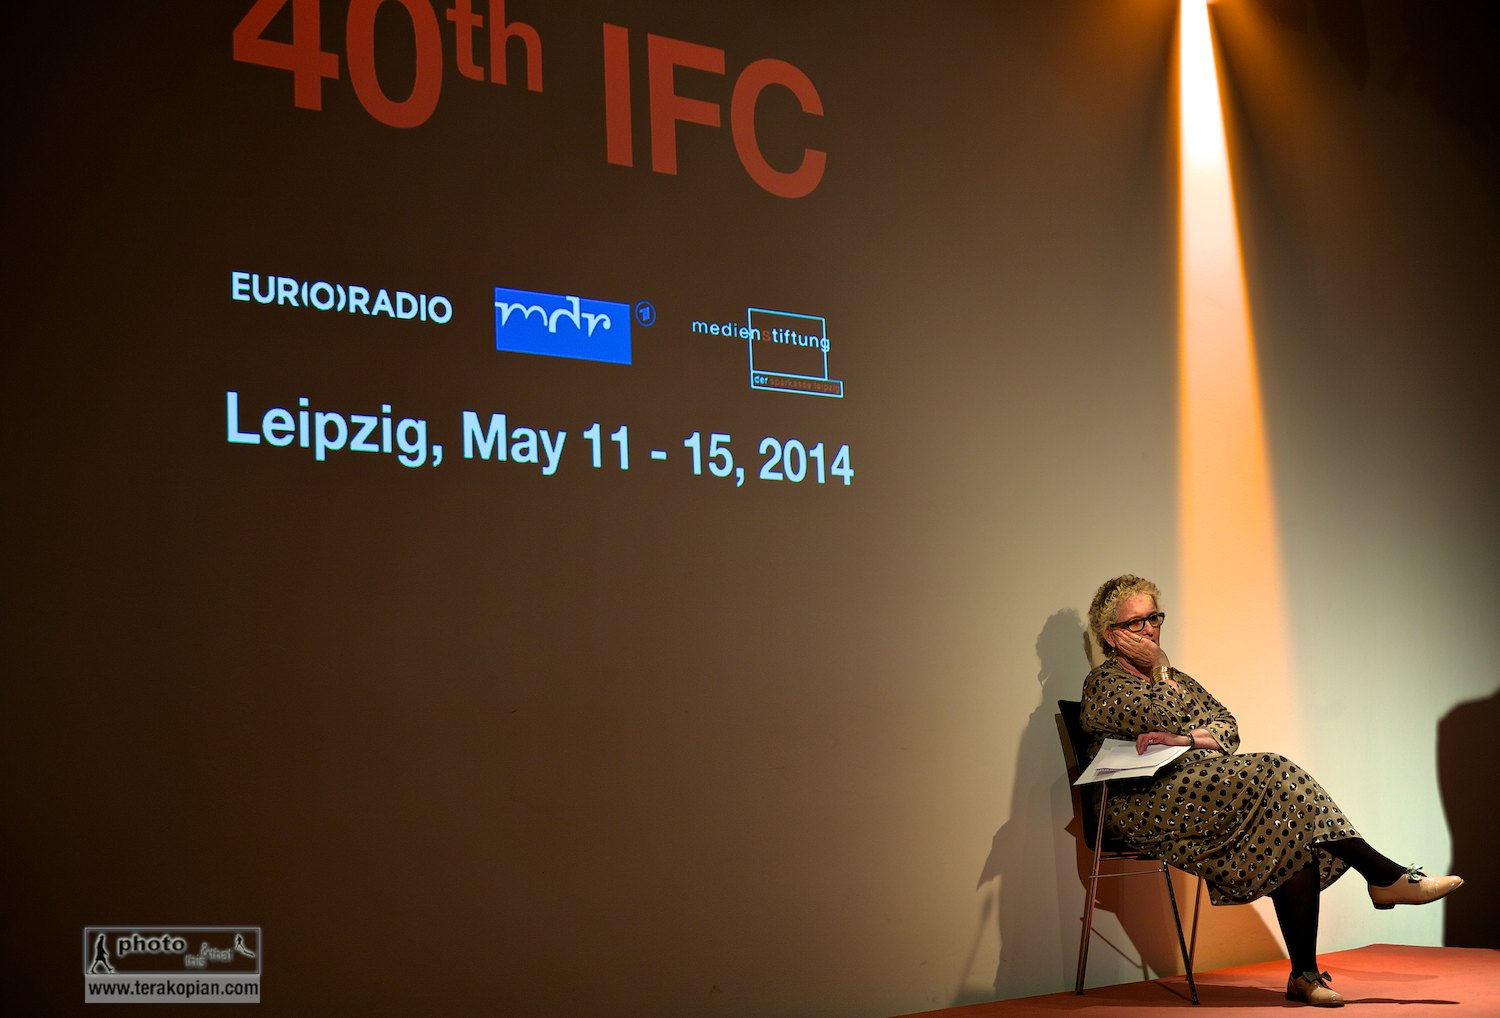 Official opening of the IFC (International Features Conference). Lorelei Harris (RTE) listens to the opening speech from the stage. Media Campus (Medienstifftung der Sparkasse Leipzig), Poetenweg, Leipzig, Germany. May 11, 2014. Photo: Edmond Terakopian